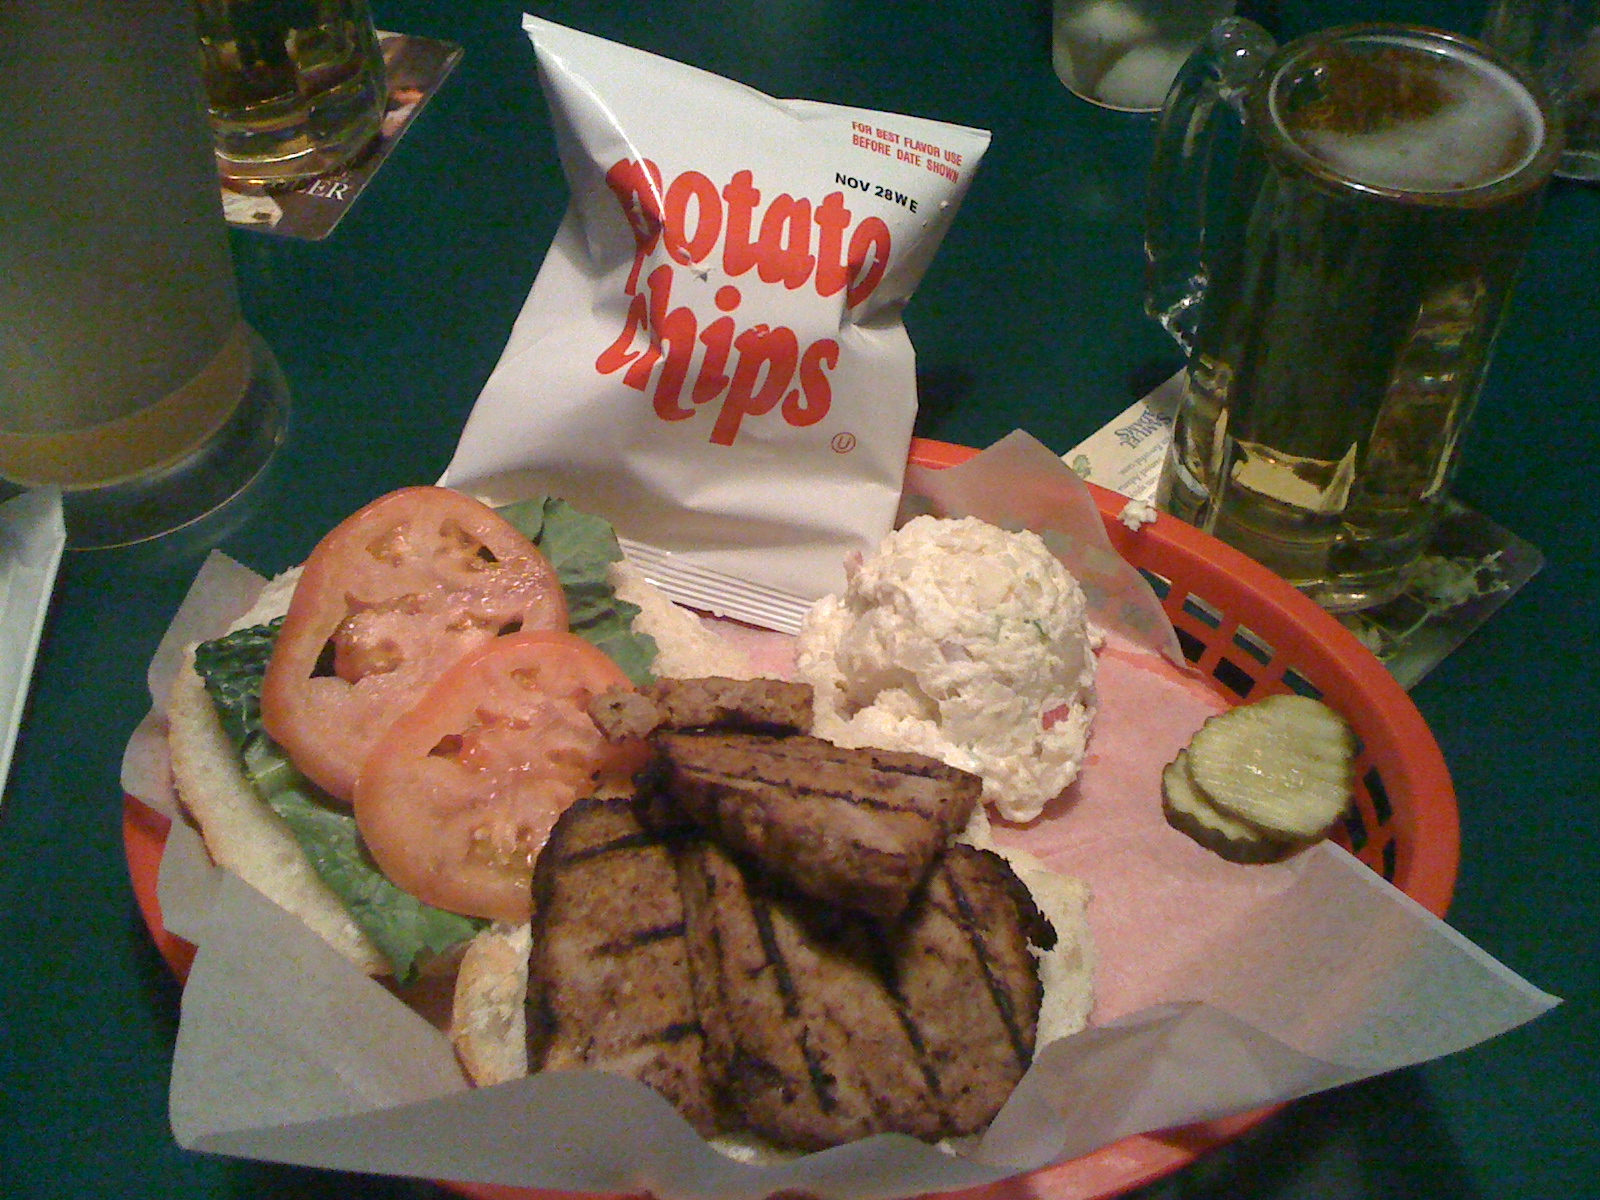 Benny's Cafe, Wocester, MA.  :: meatloaf sandwich, side of potato salad and chips. bud light for a drink.